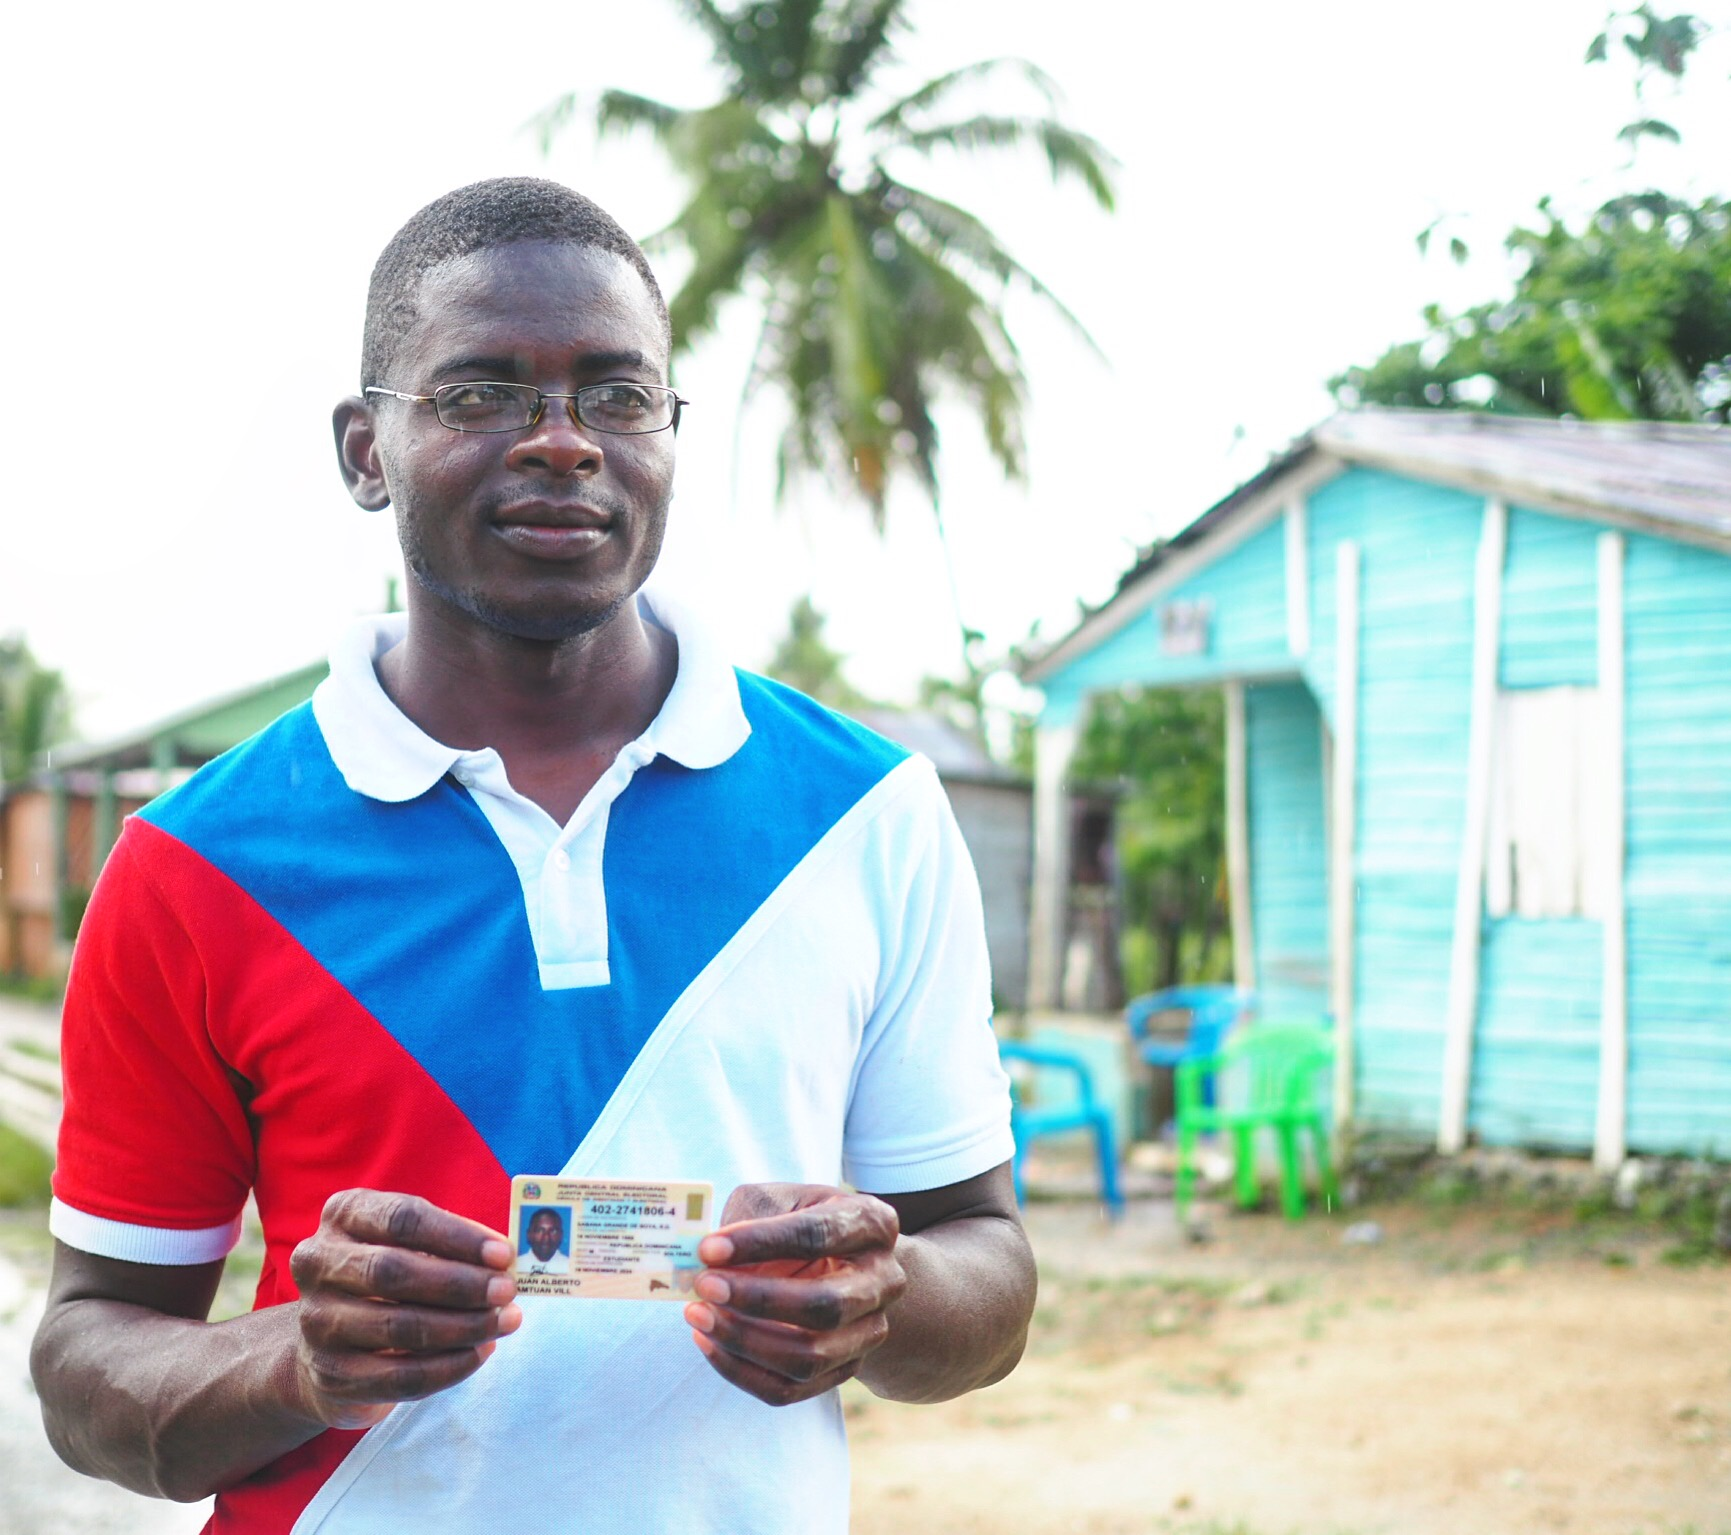 Juan-Alberto, local teacher and human rights activist, proudly showing his Dominican citizenship